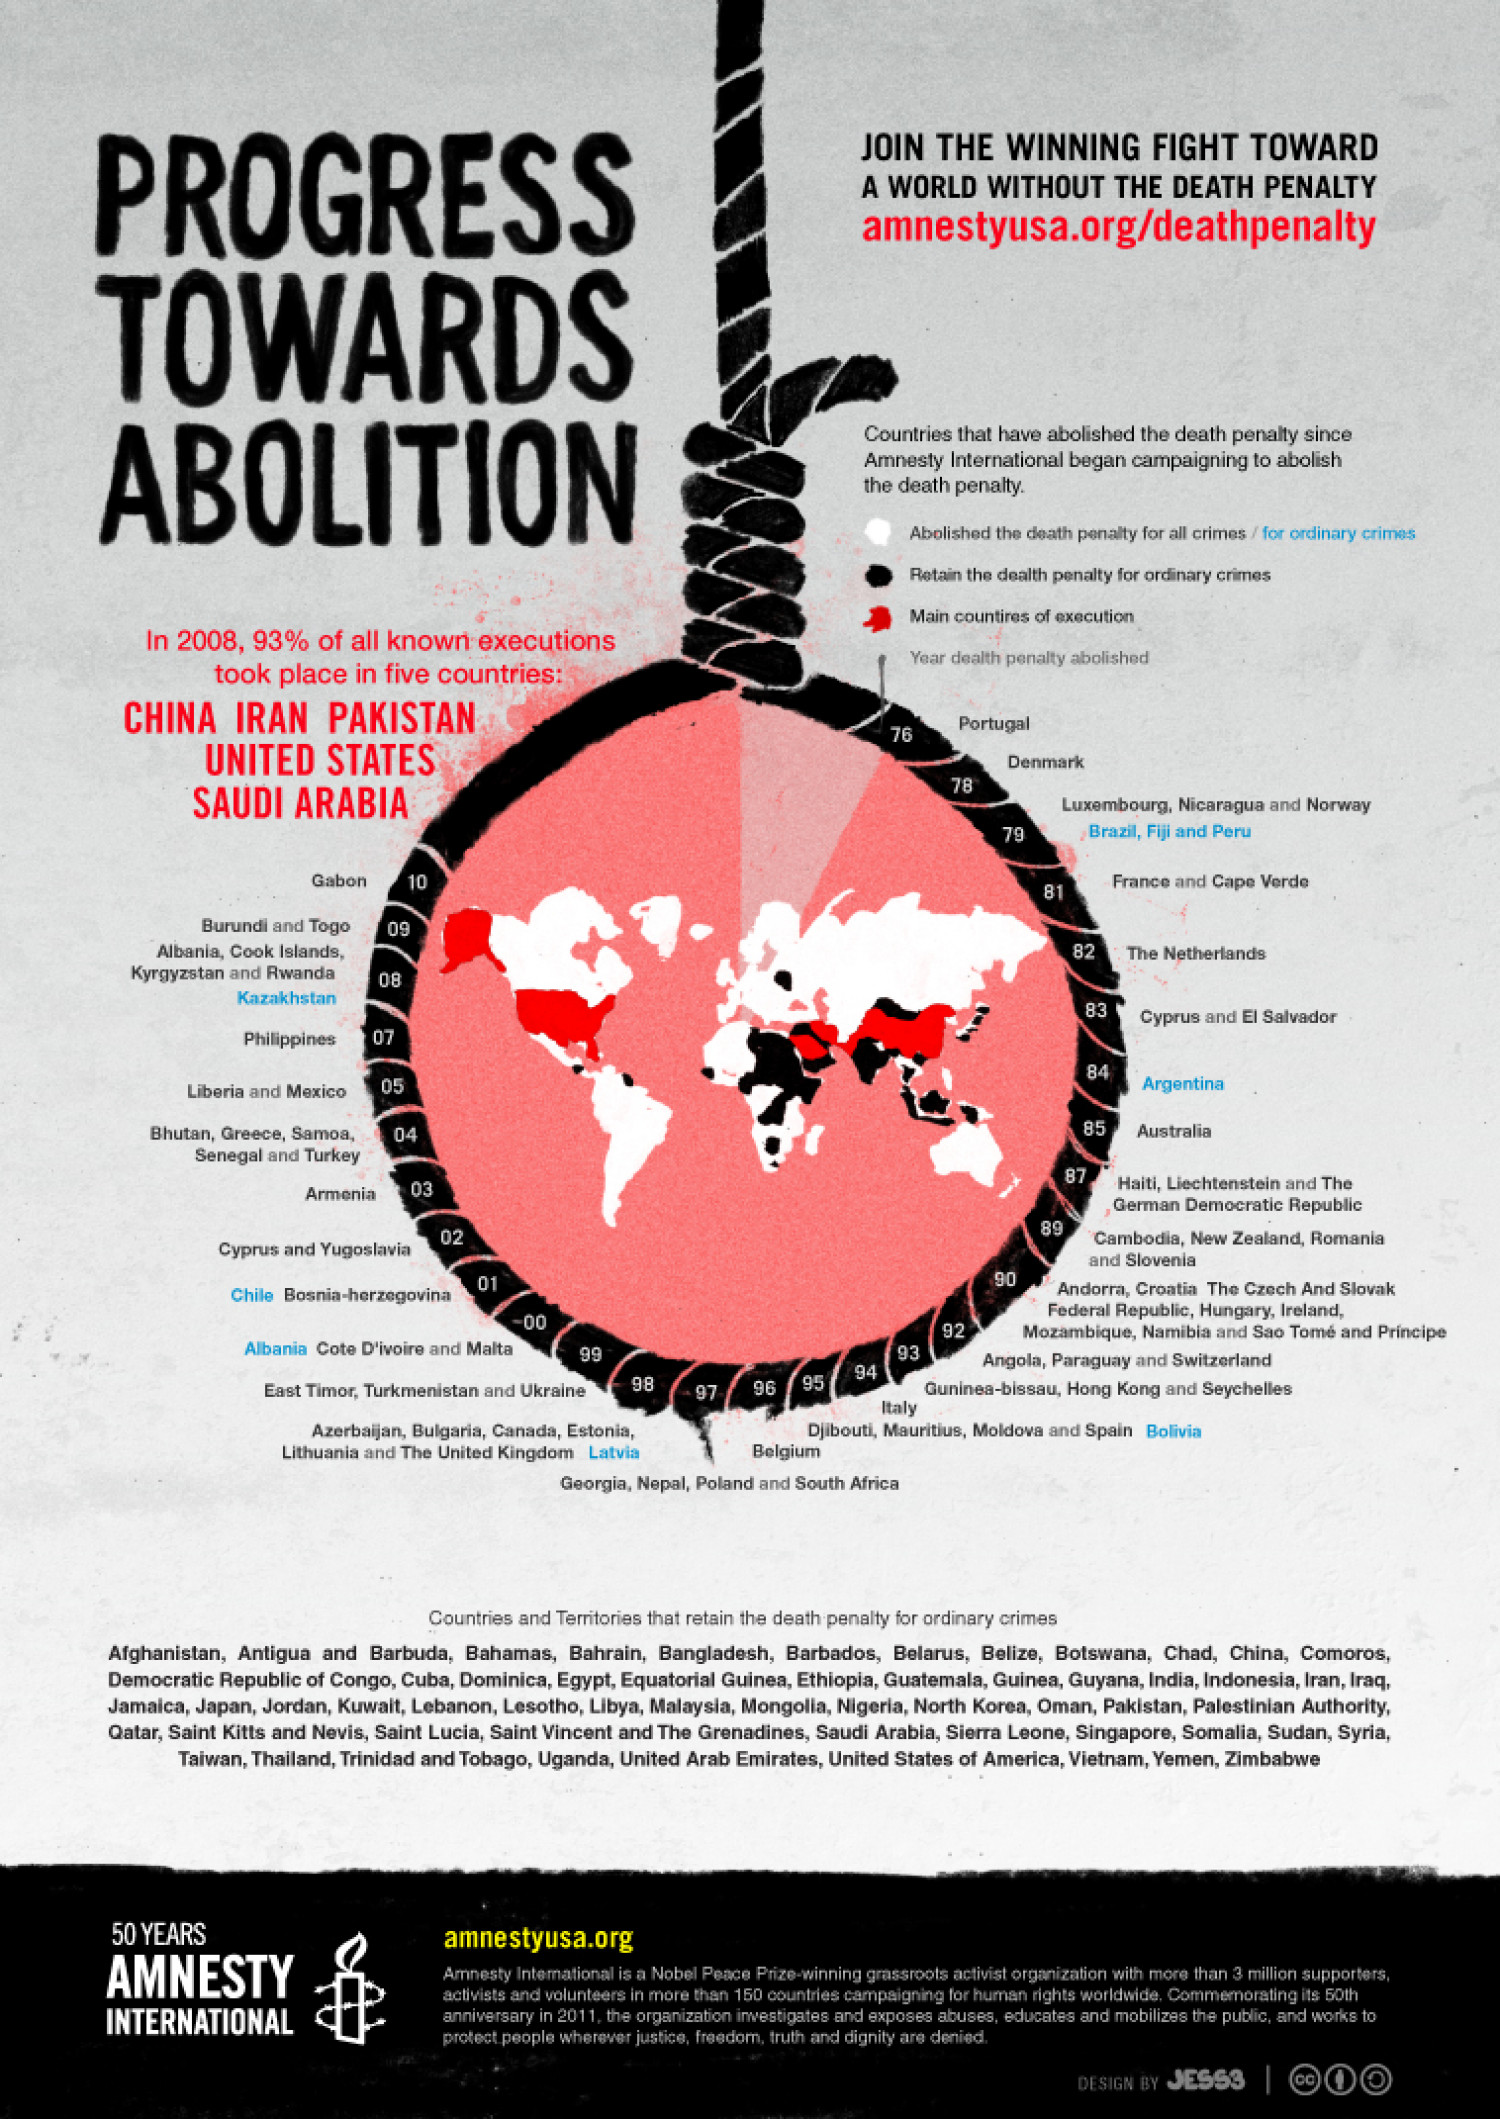 Progress Towards Abolition: Amnesty International 50th Anniversary Infographic